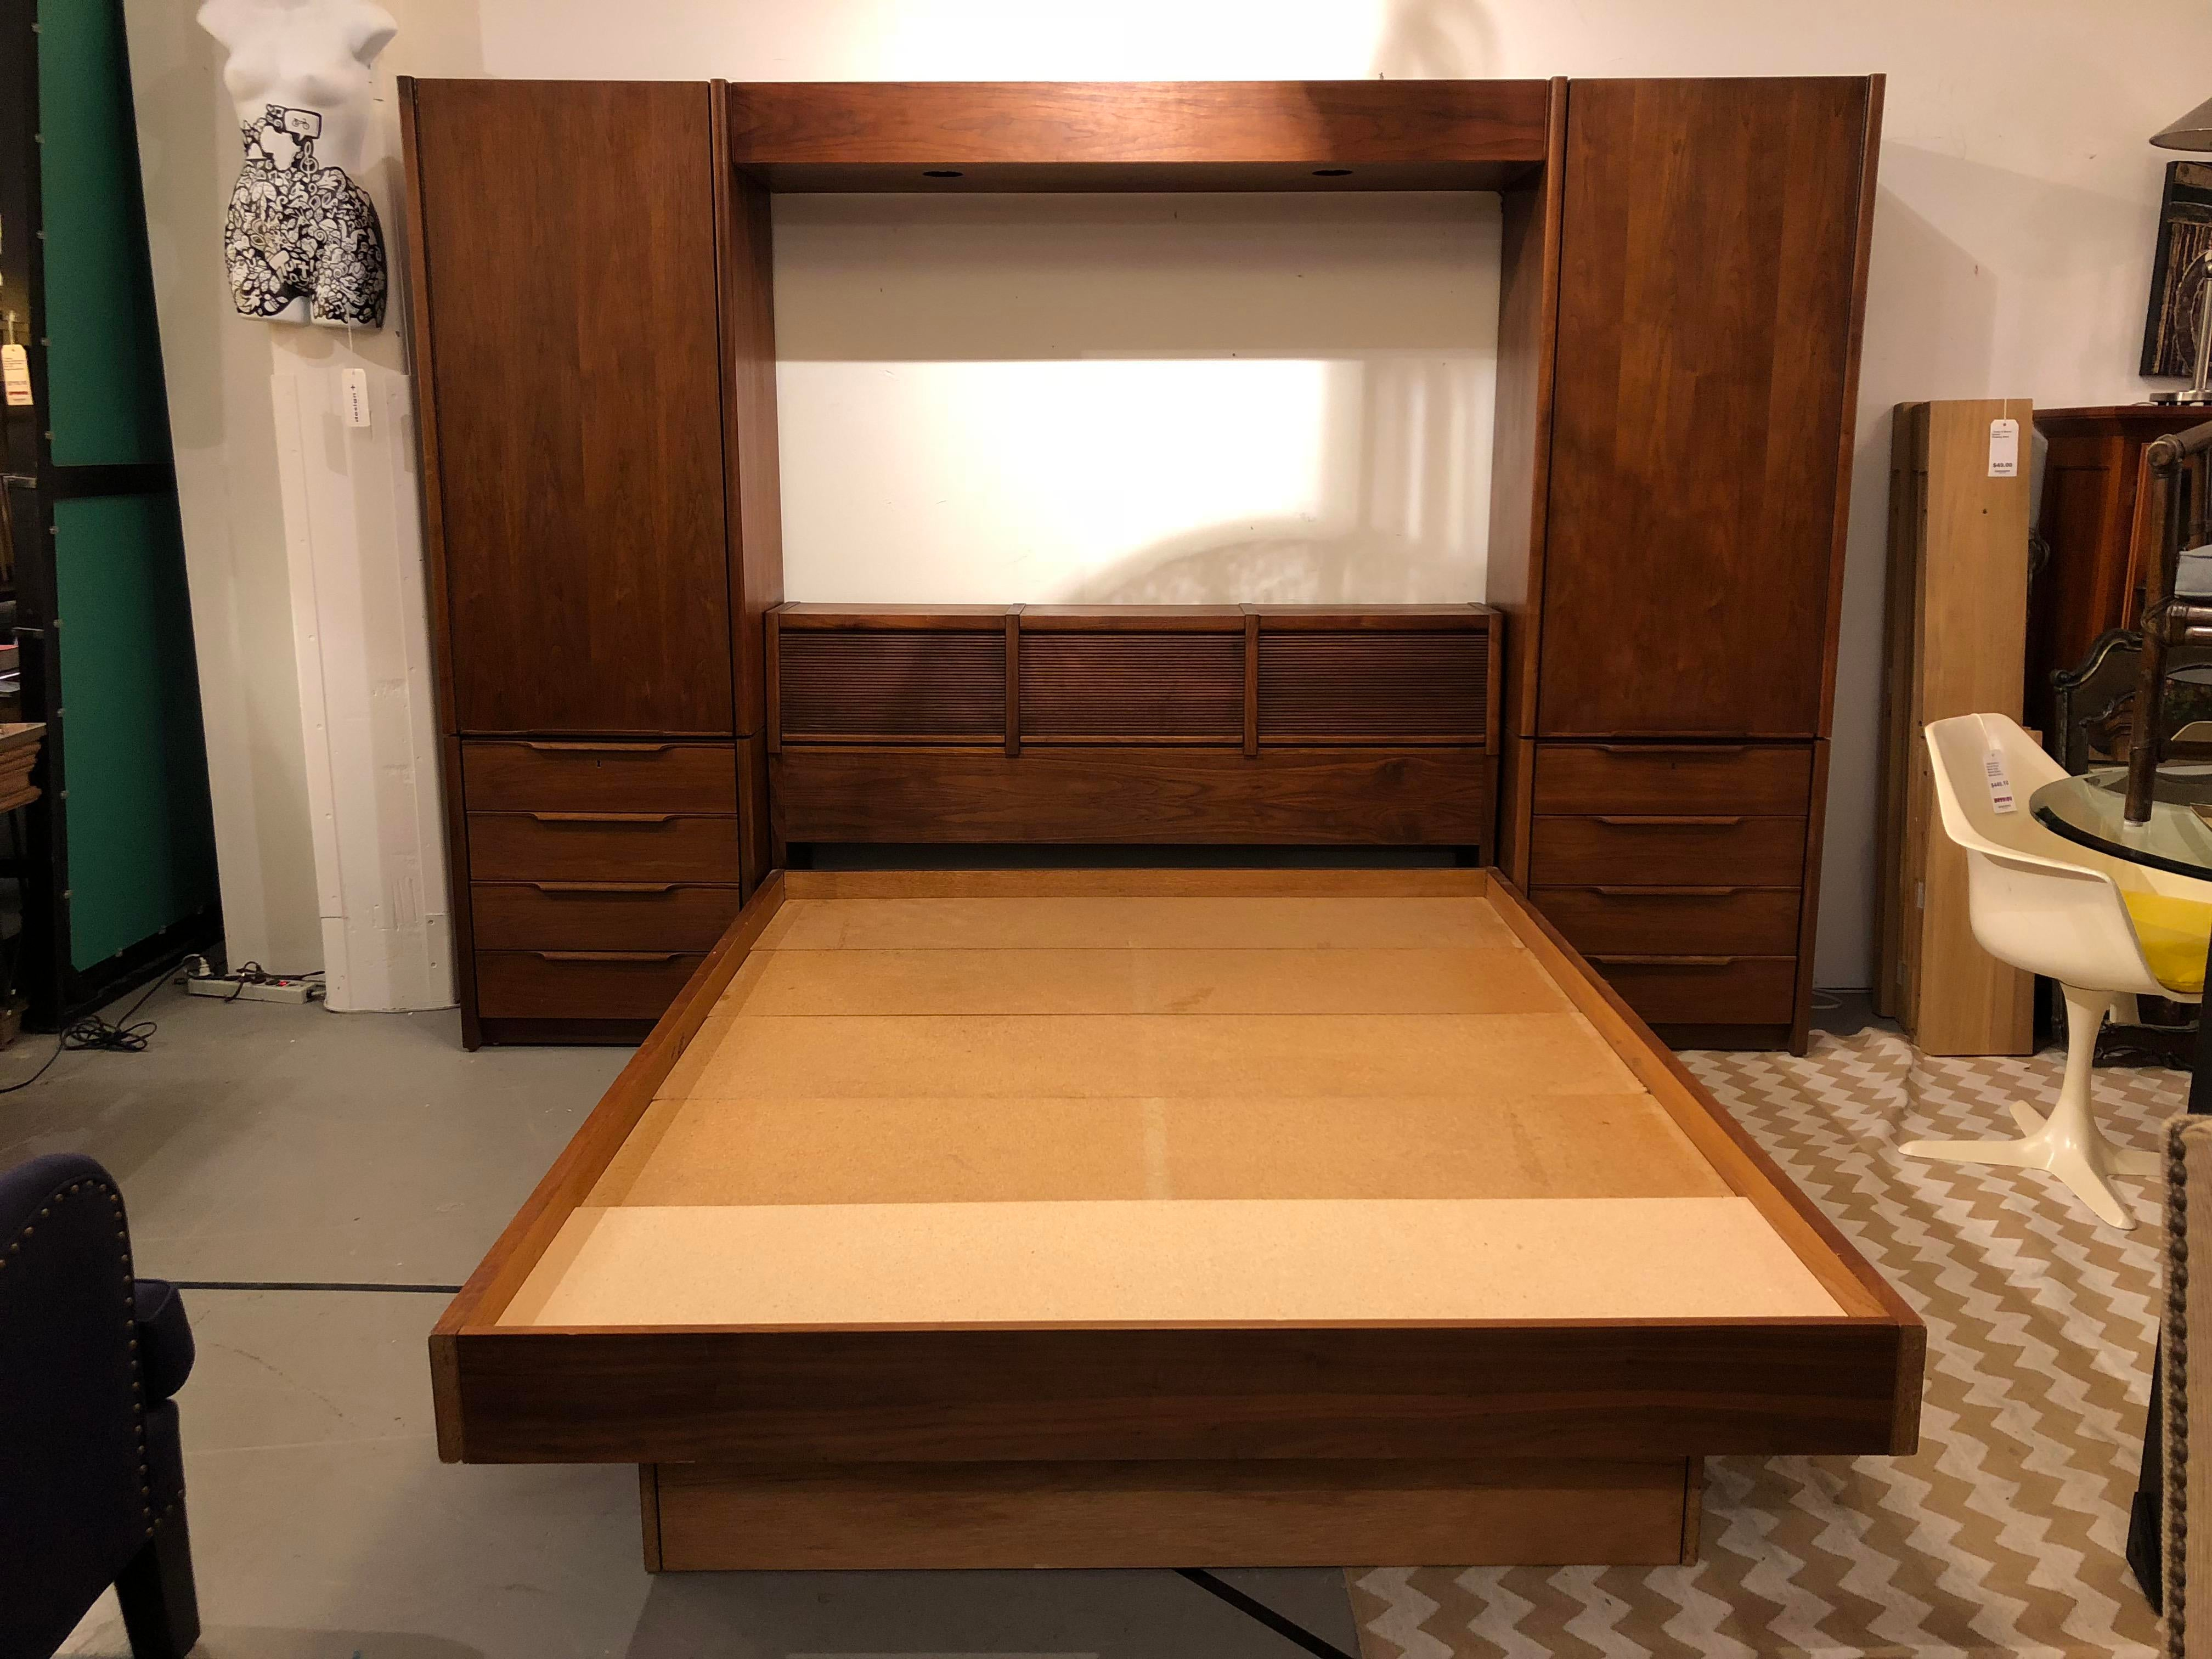 Queen bedroom furniture image11 Cheap Midcentury Modern Barzilay Walnut Queen Bed Frame With Storage For Sale Image 11 Chairish Midcentury Modern Barzilay Walnut Queen Bed Frame With Storage